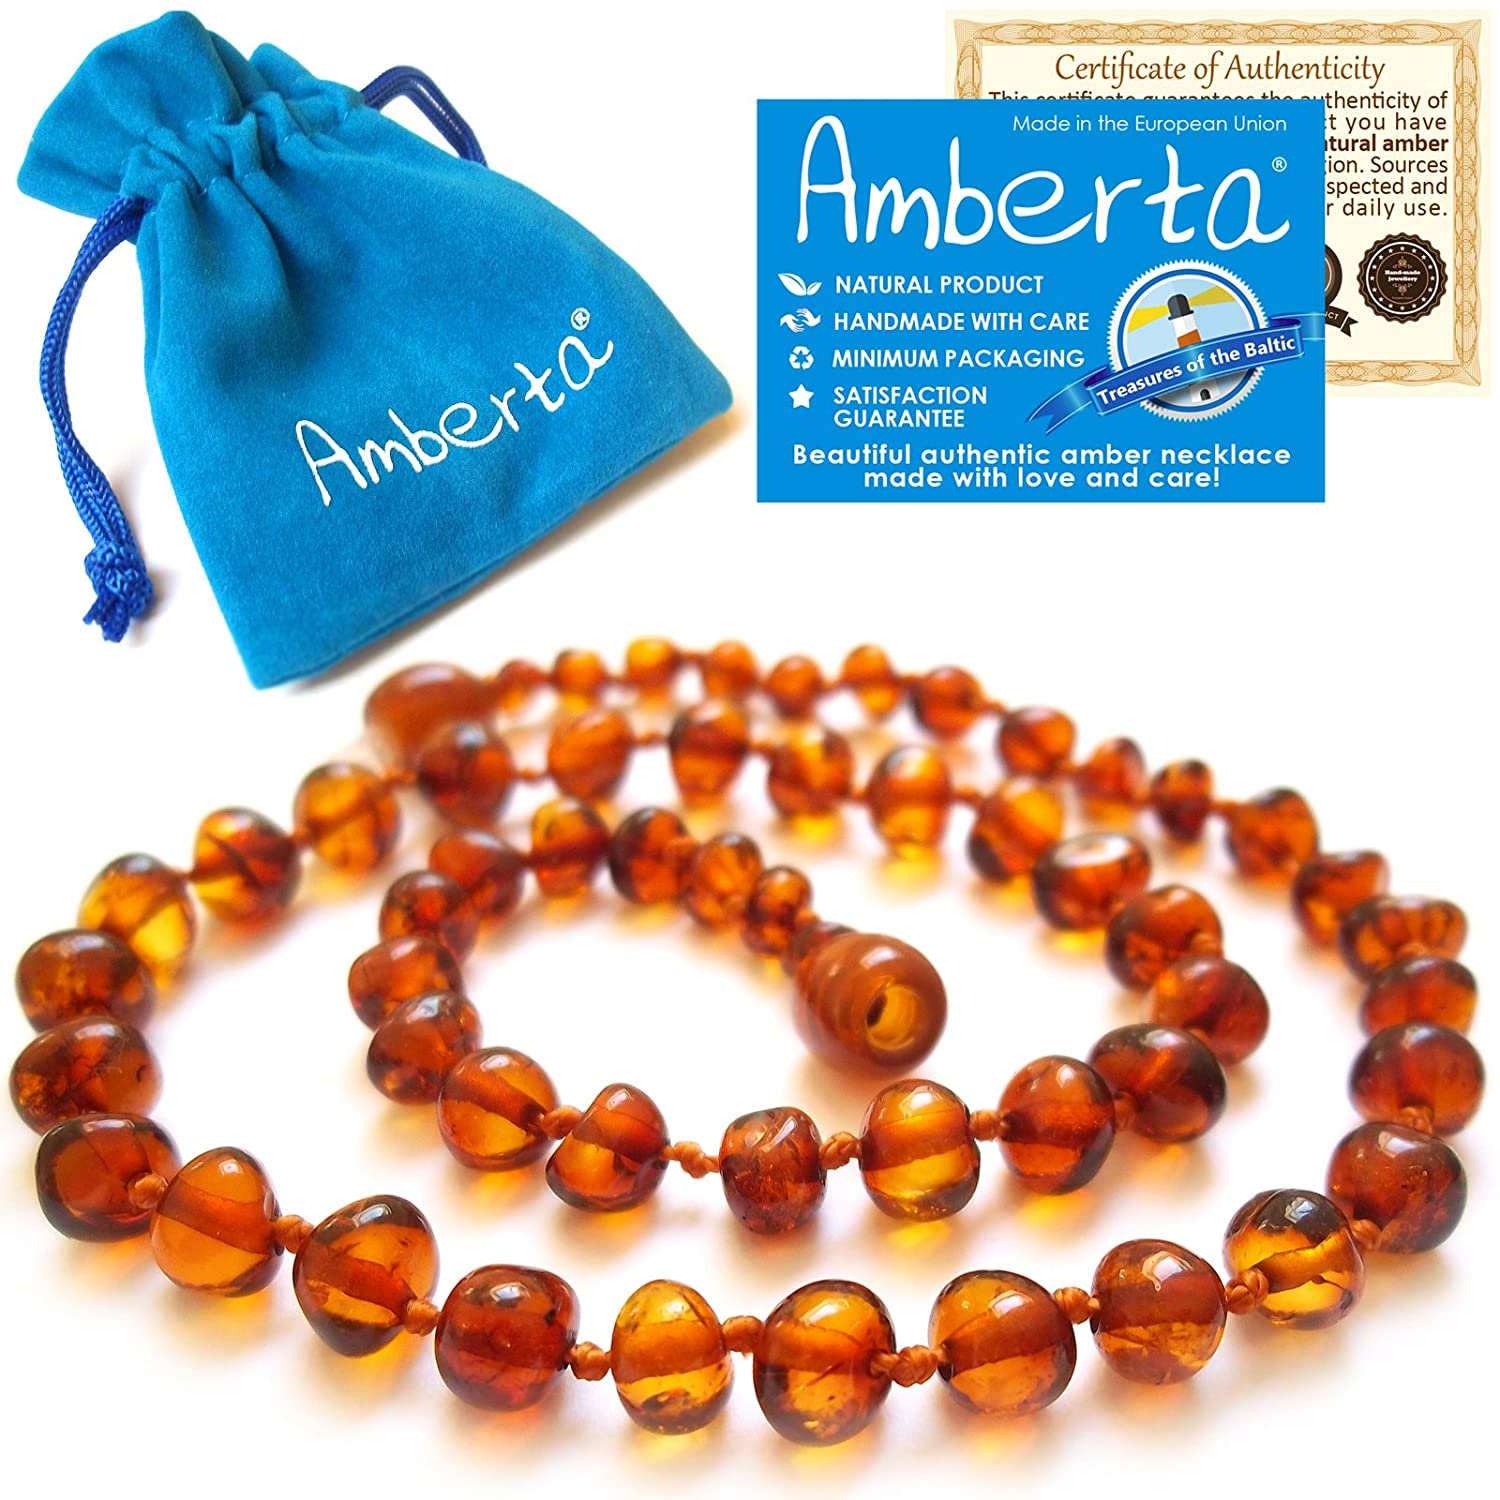 Amber Teething Necklace for Babies Amberta - Anti Inflammatory, Teething Discomfort & Drooling Relief, Natural Soothing Effect - 100% Pure Amber, Twist-in Screw Clasp, Handmade ARBN02-32